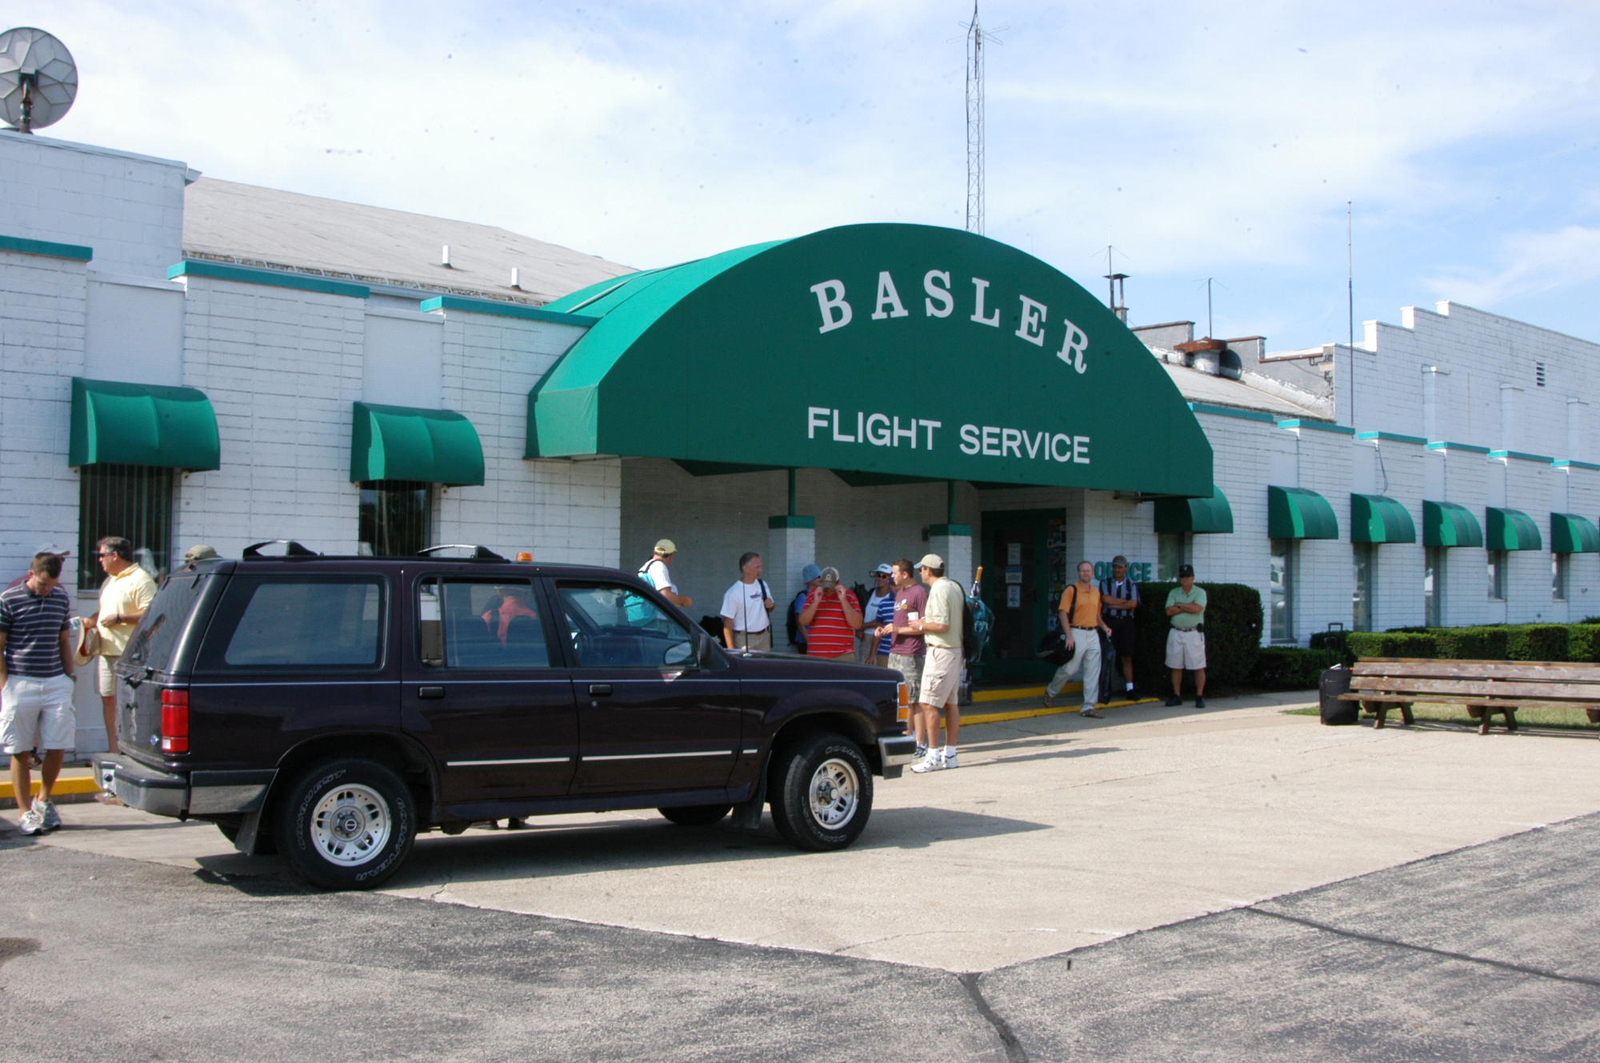 Basler Flies the DC-3 into the 21st Century